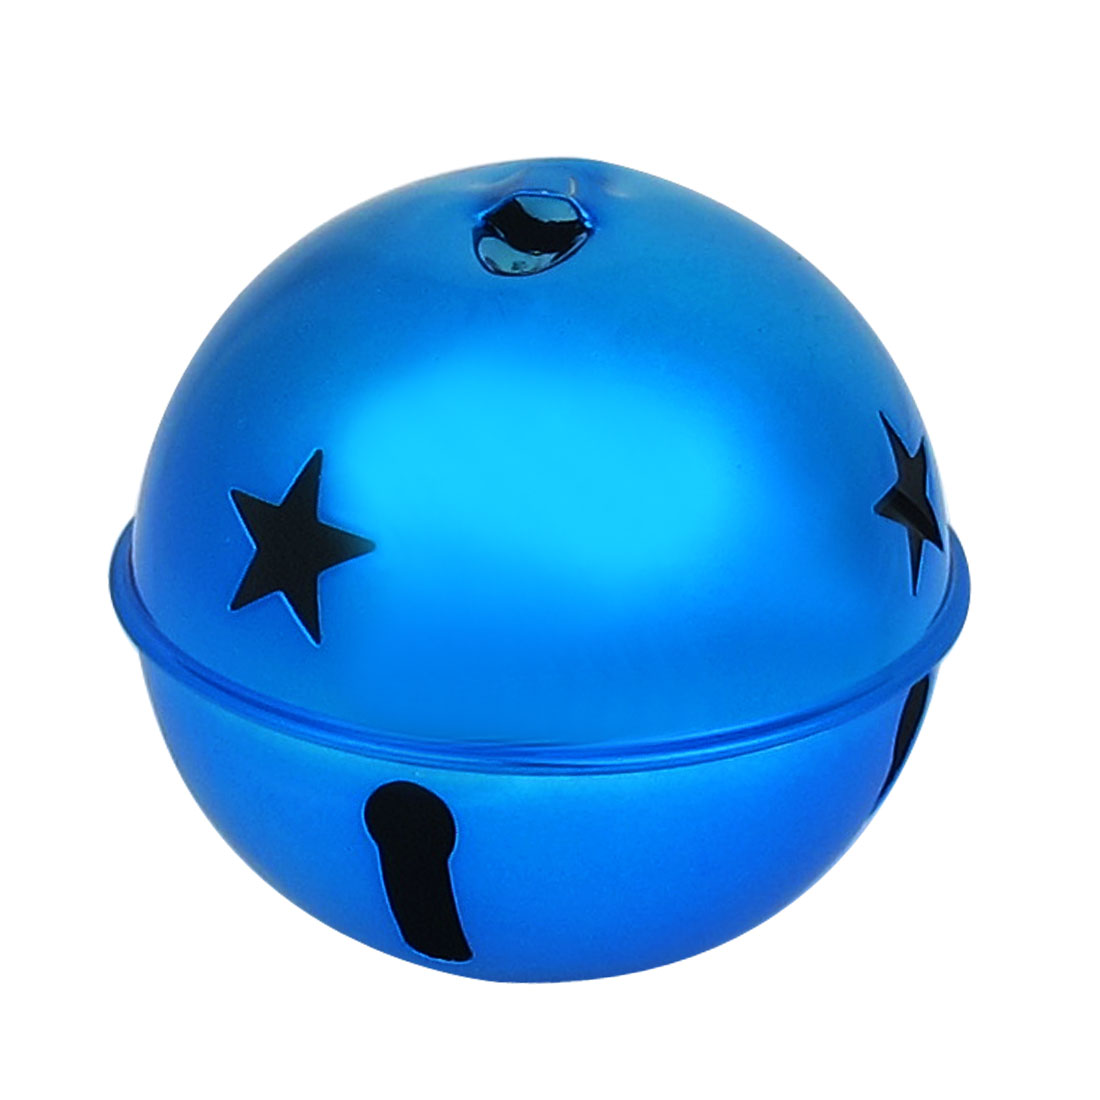 80mm Diameter Dark Blue Metal Star Detail Ball Shape Hollow Out Design Jingle Ring Bell Ornament for Christmas Tree Party